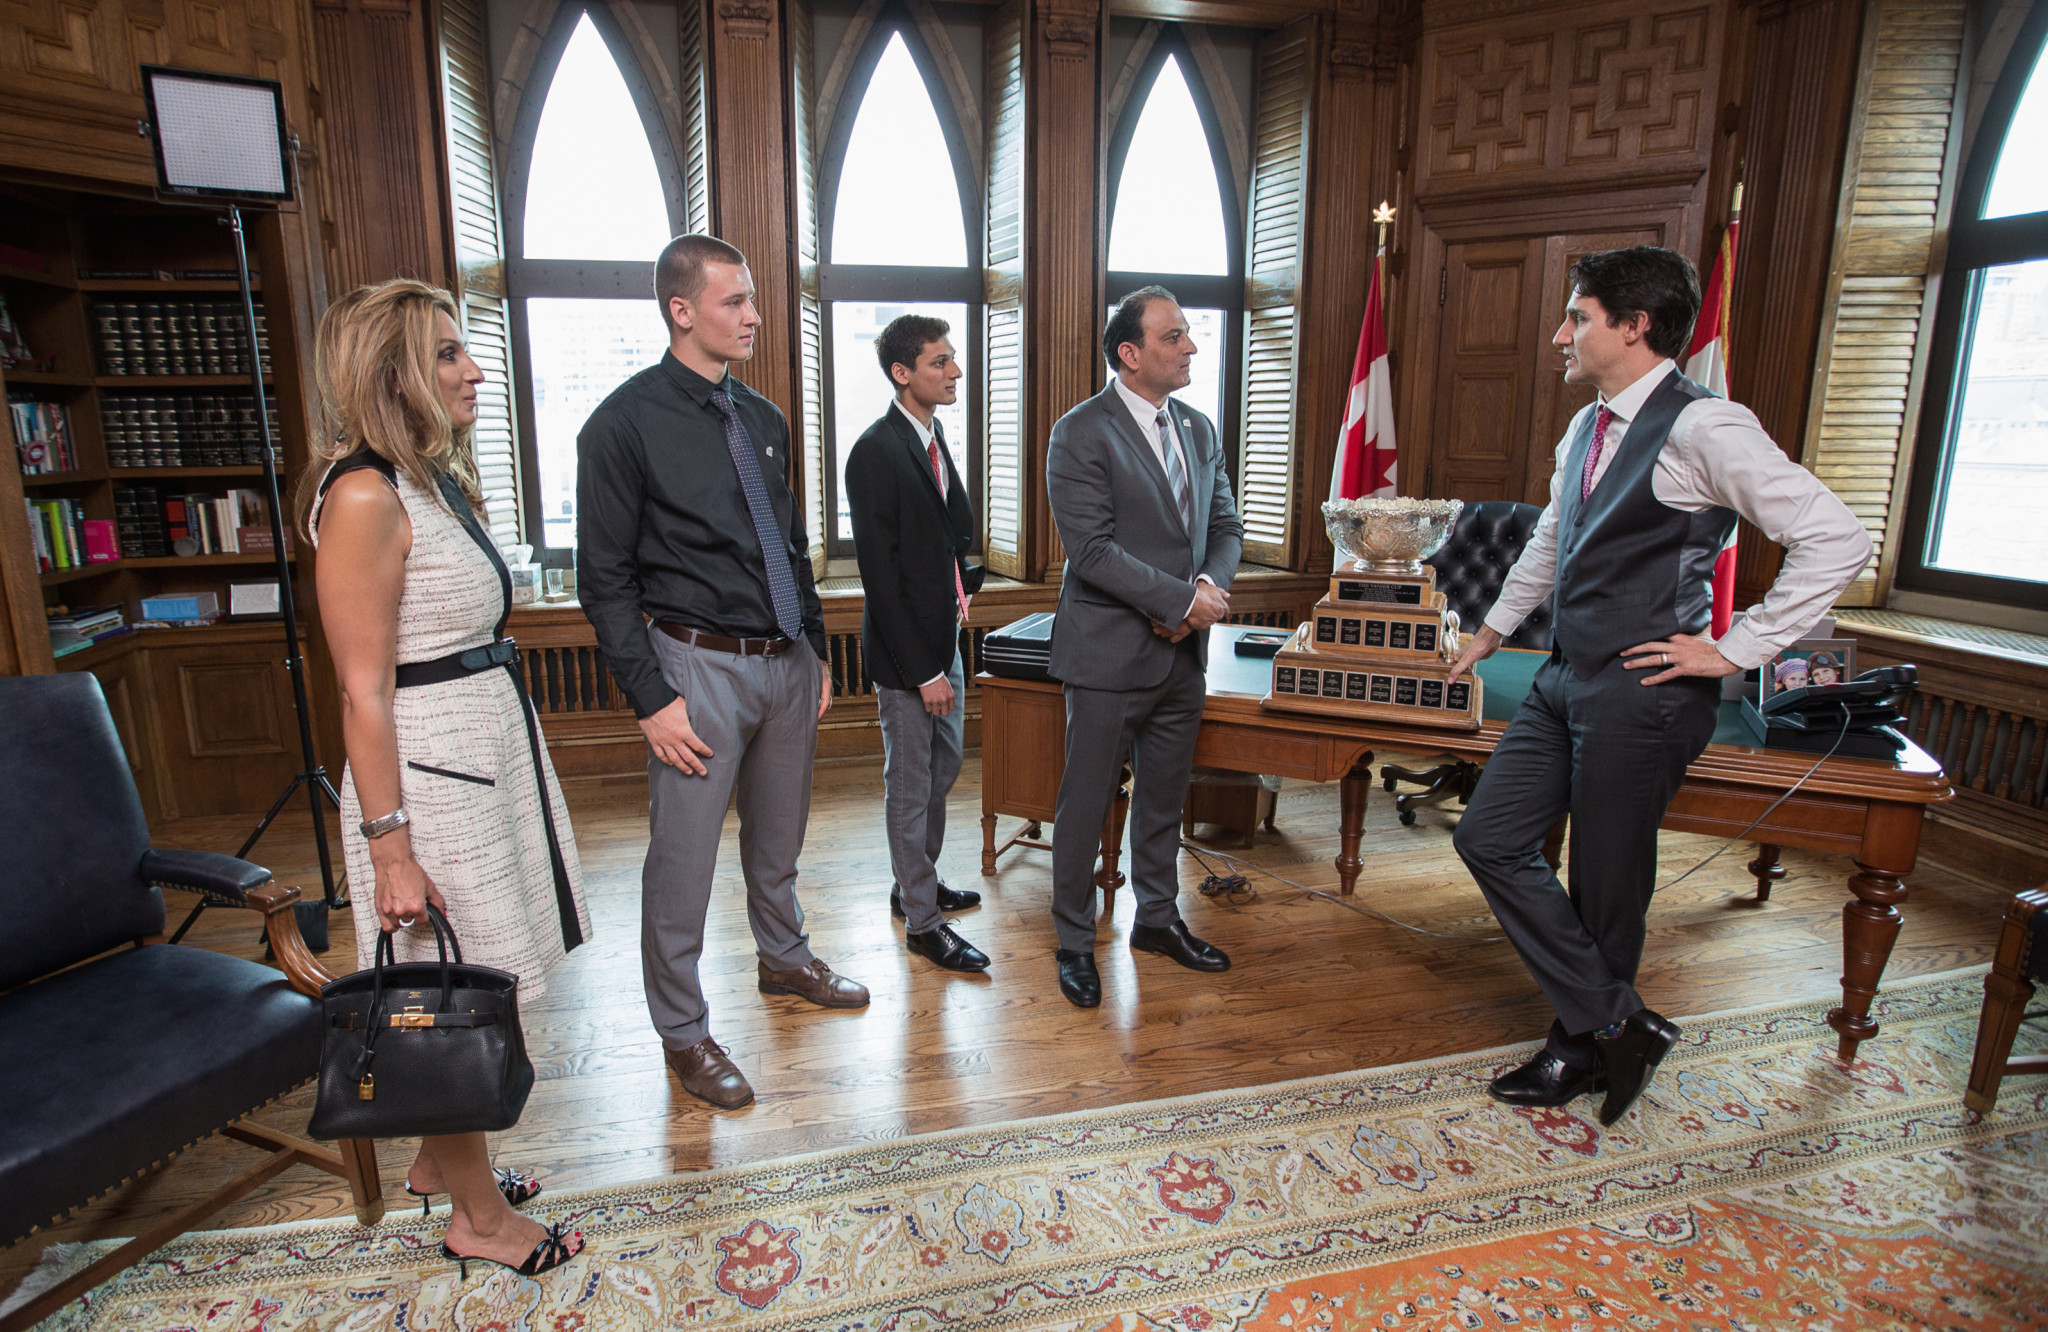 Image: Office of the Prime Minister